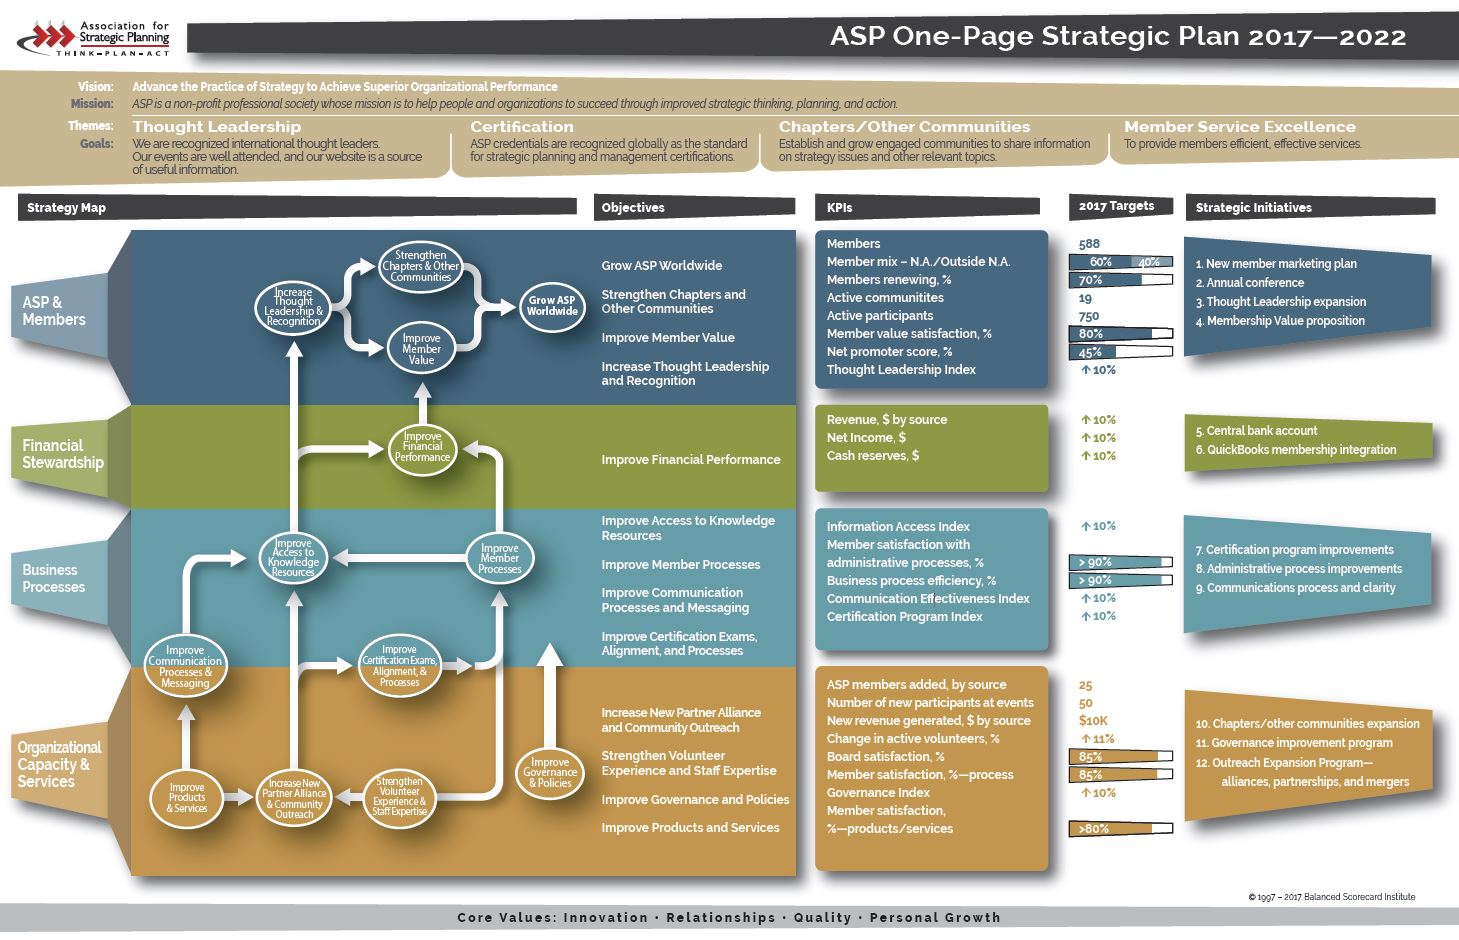 ASP Strategic Plan - Association for Strategic Planning